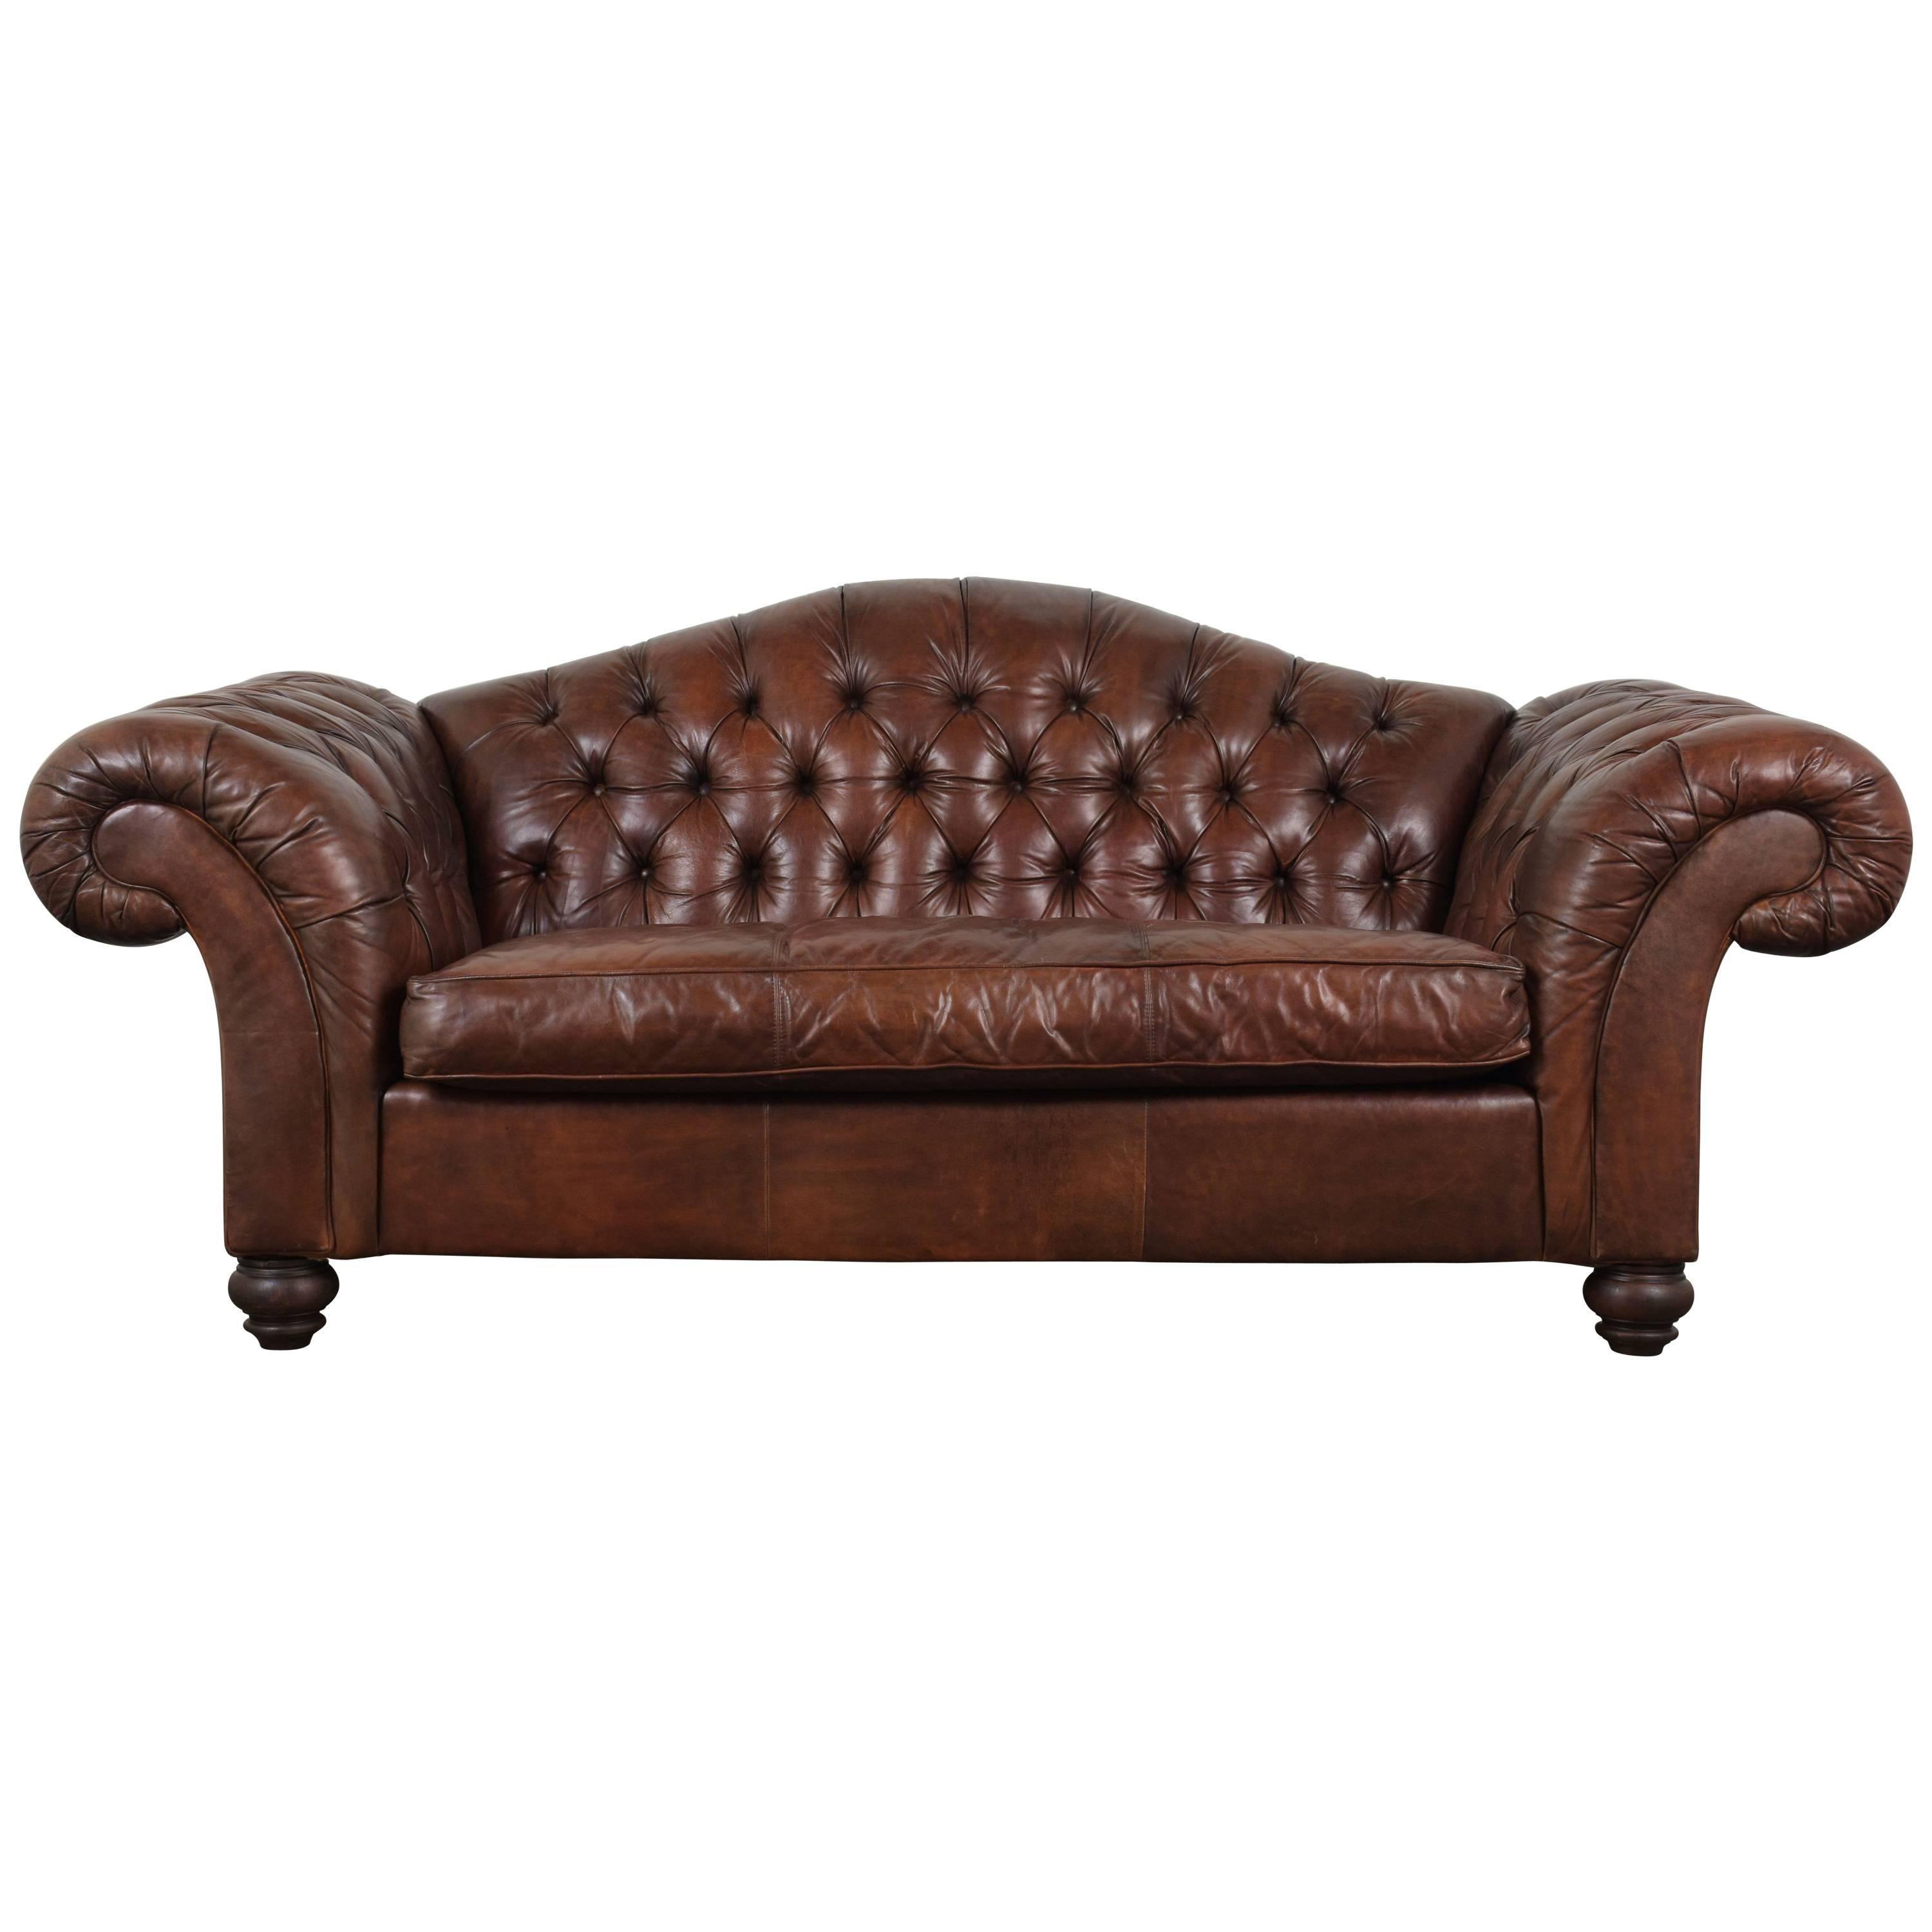 Chesterfield Sofa Vintage Burgundy Leather Chesterfield Sofa